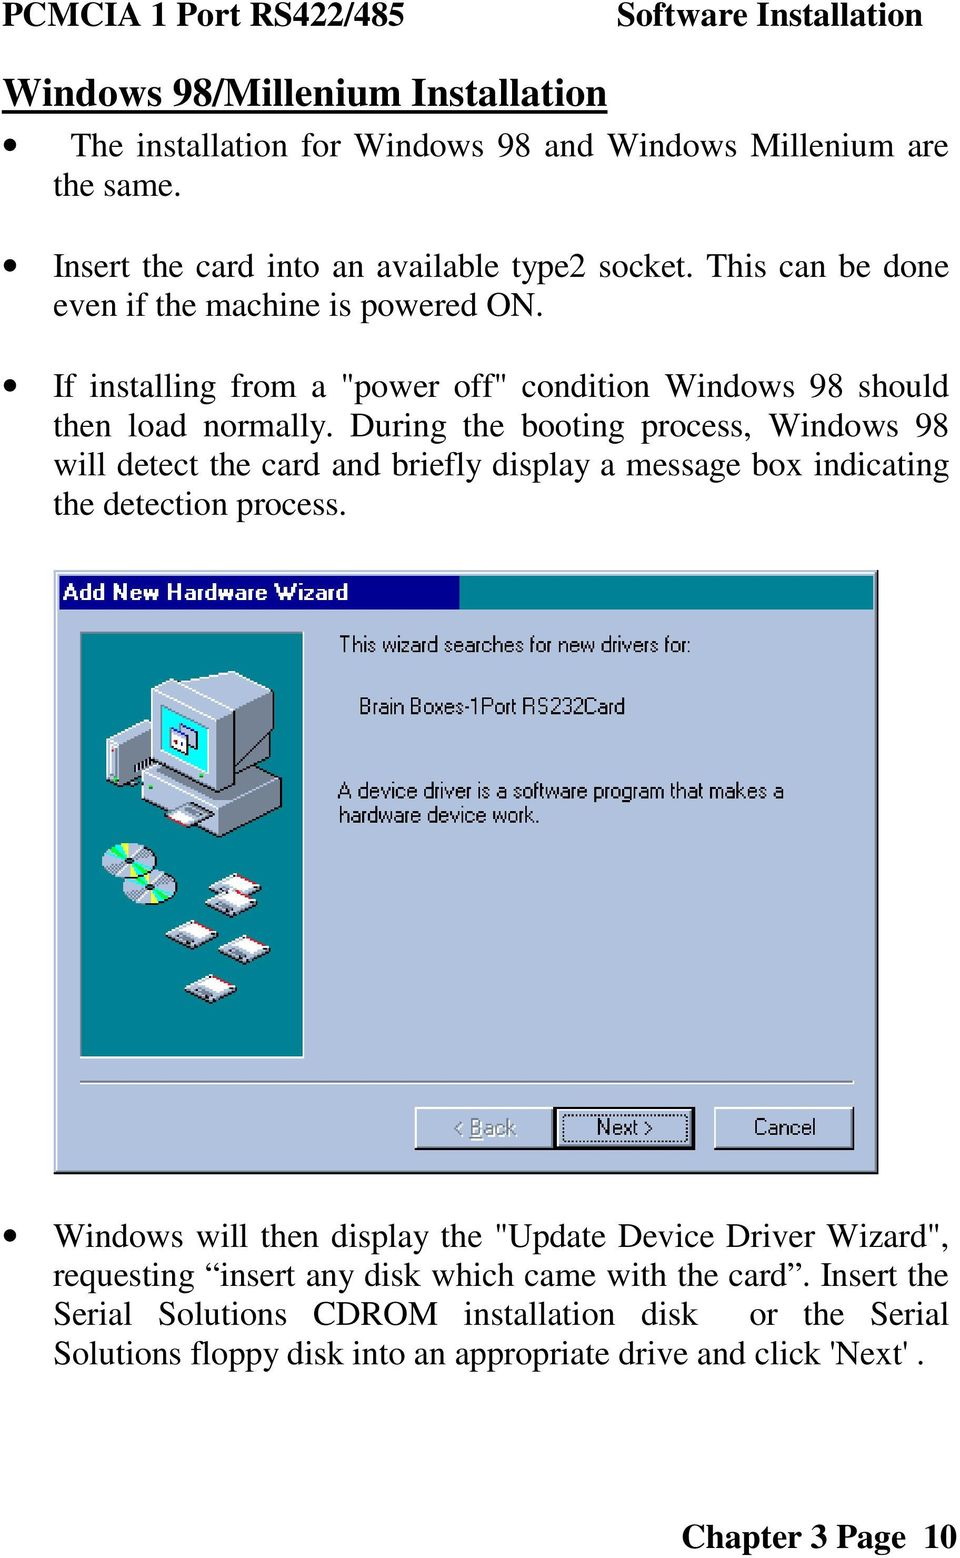 During the booting process, Windows 98 will detect the card and briefly display a message box indicating the detection process.